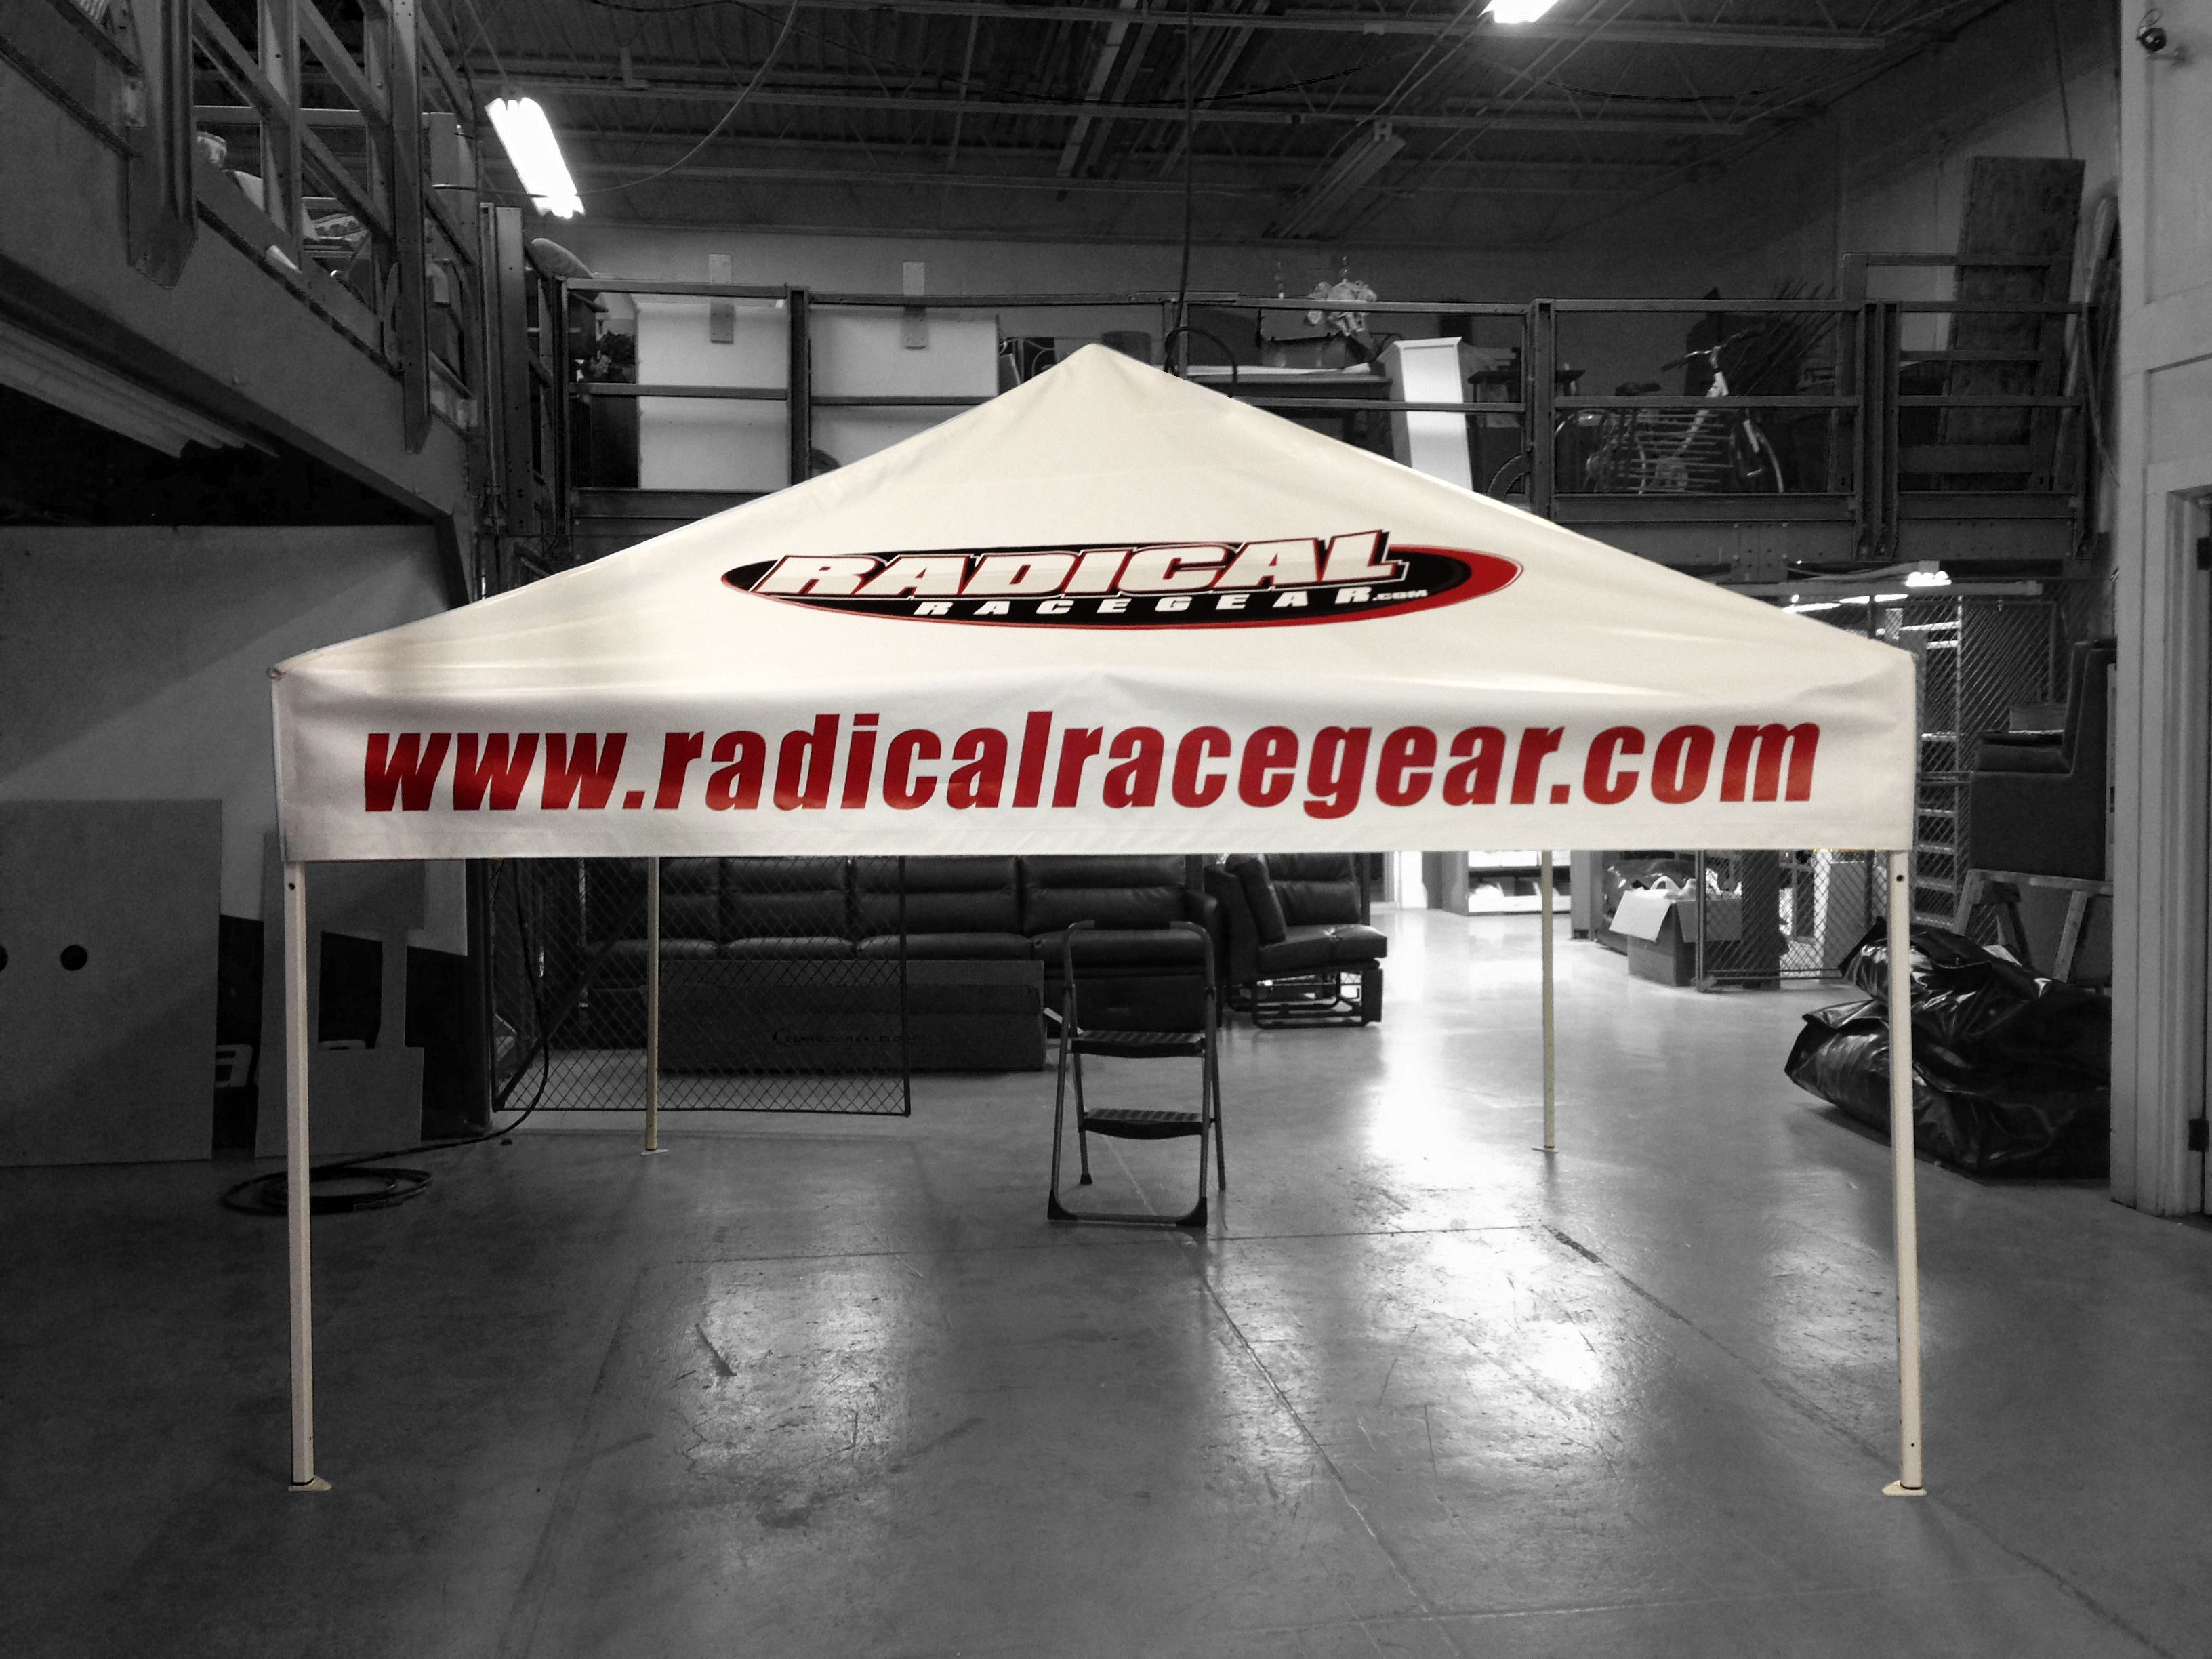 E-Z UP Tent for Radical Racegear (With images)   Custom awnings. Ez up tent. Tent